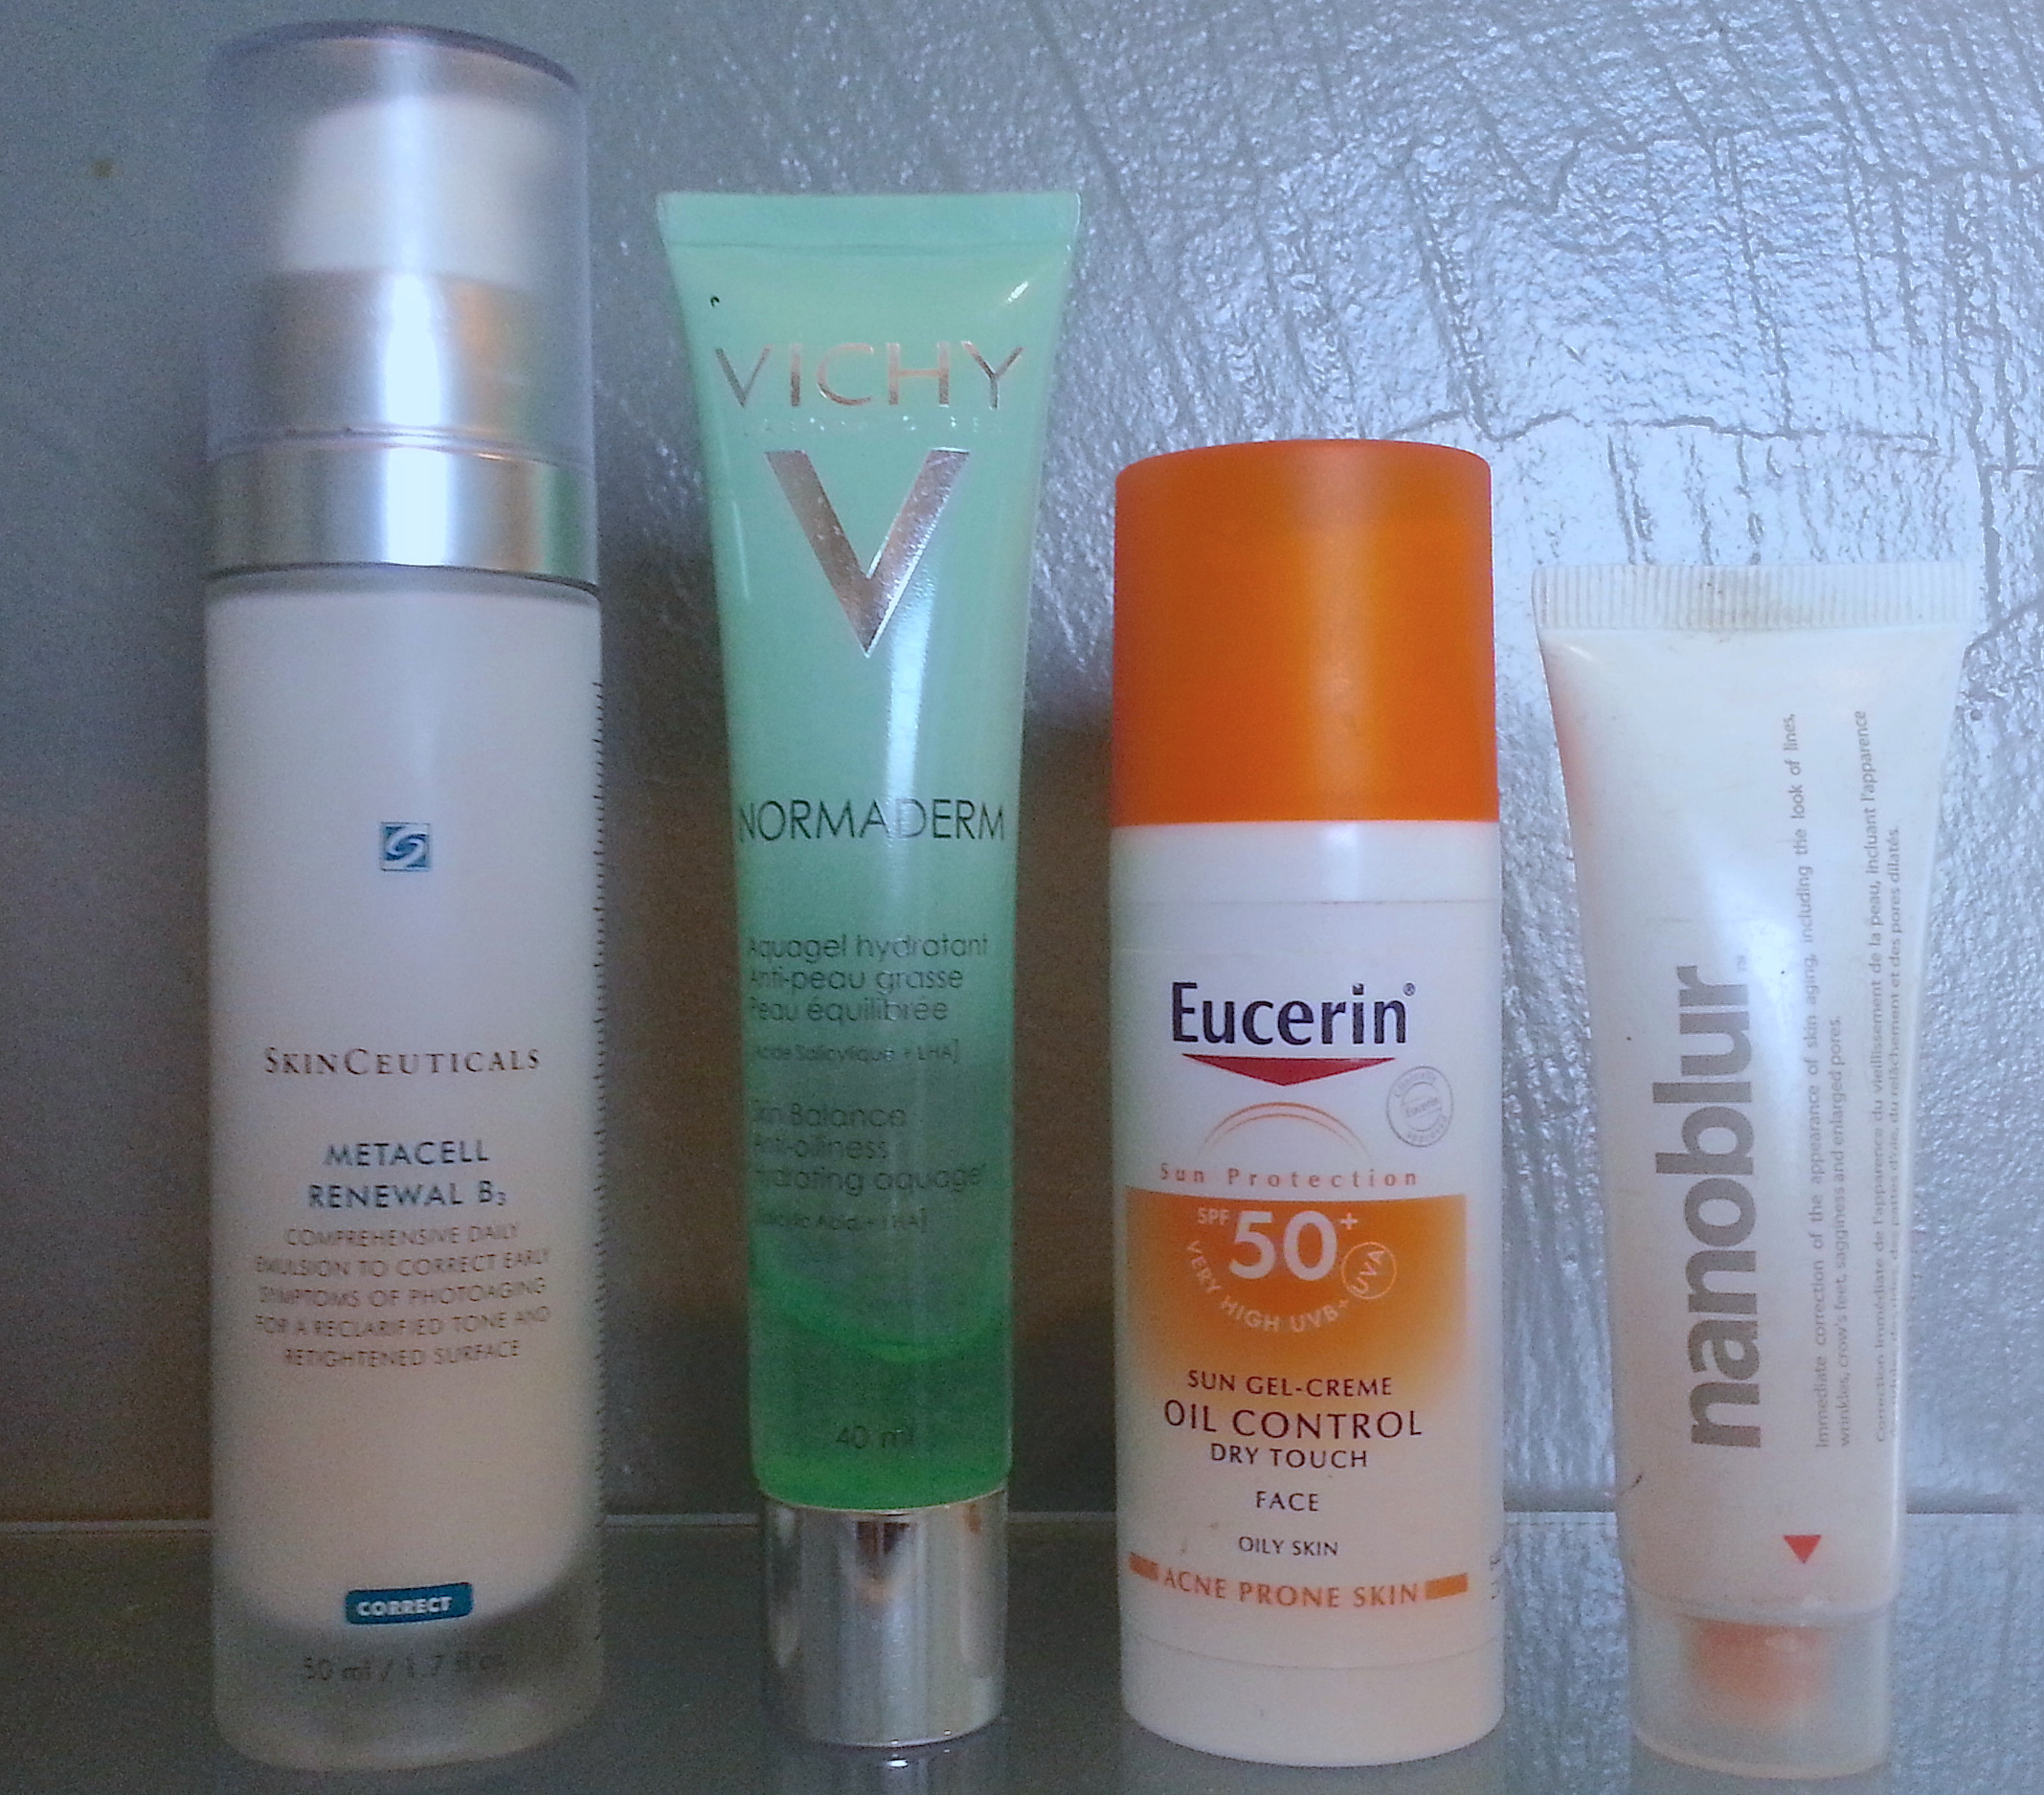 From left: SkinCeuticals Metacell Renewel B3; Normaderm Aquagel hydratant; Eucerin oil control sun gel-creme, SPF 50+; Nanoblur corrector (discontinued).